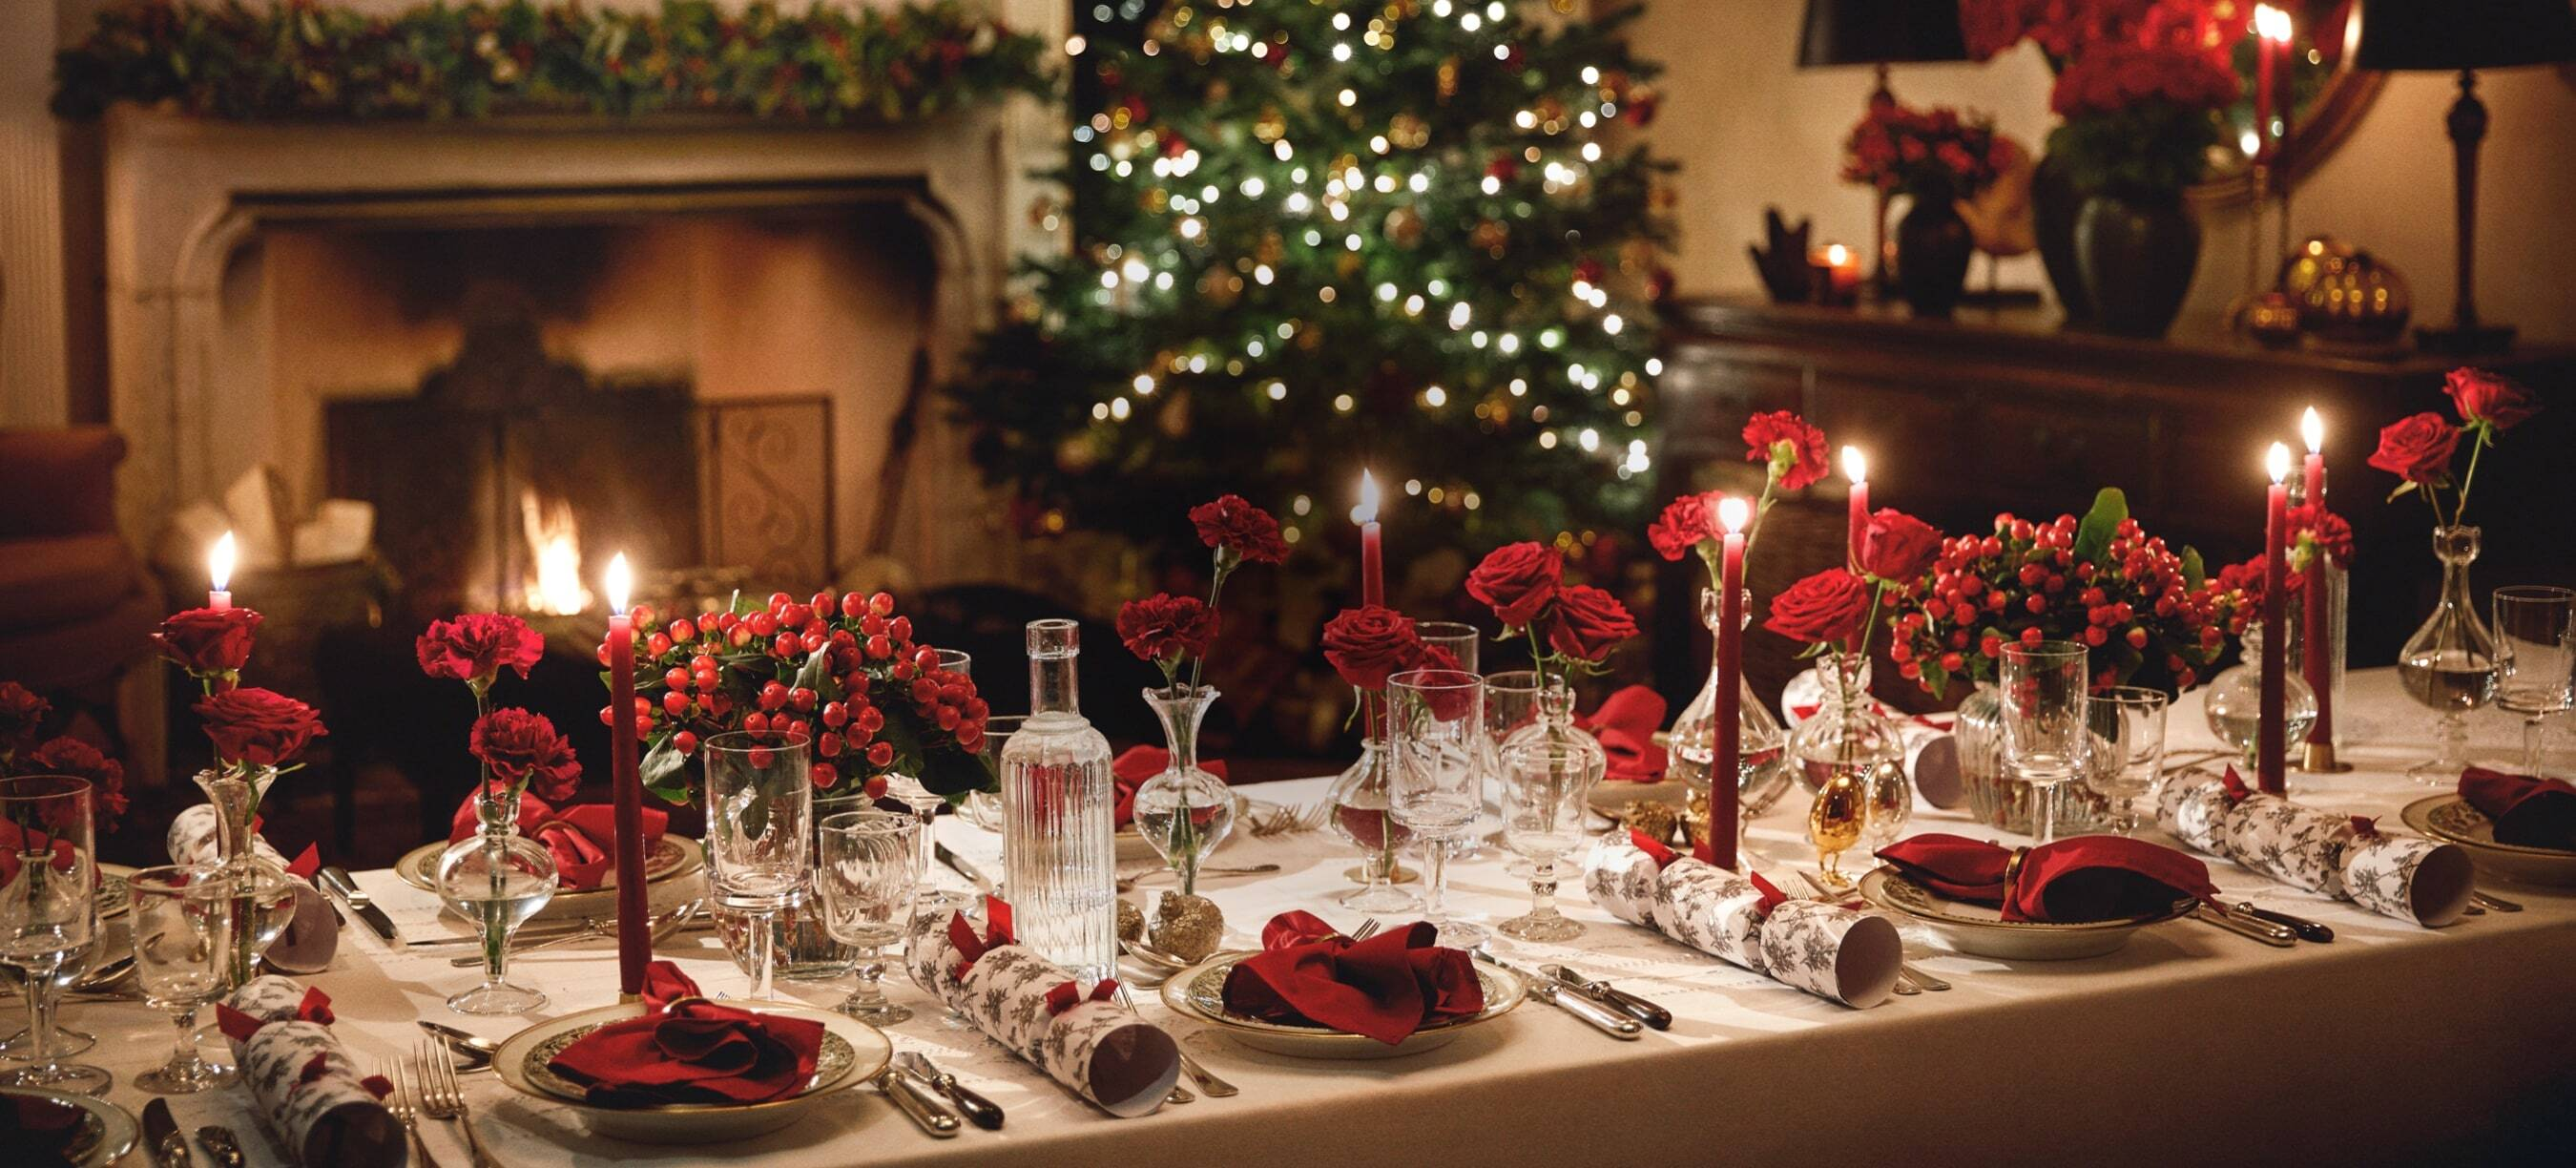 Set de Table de Noël